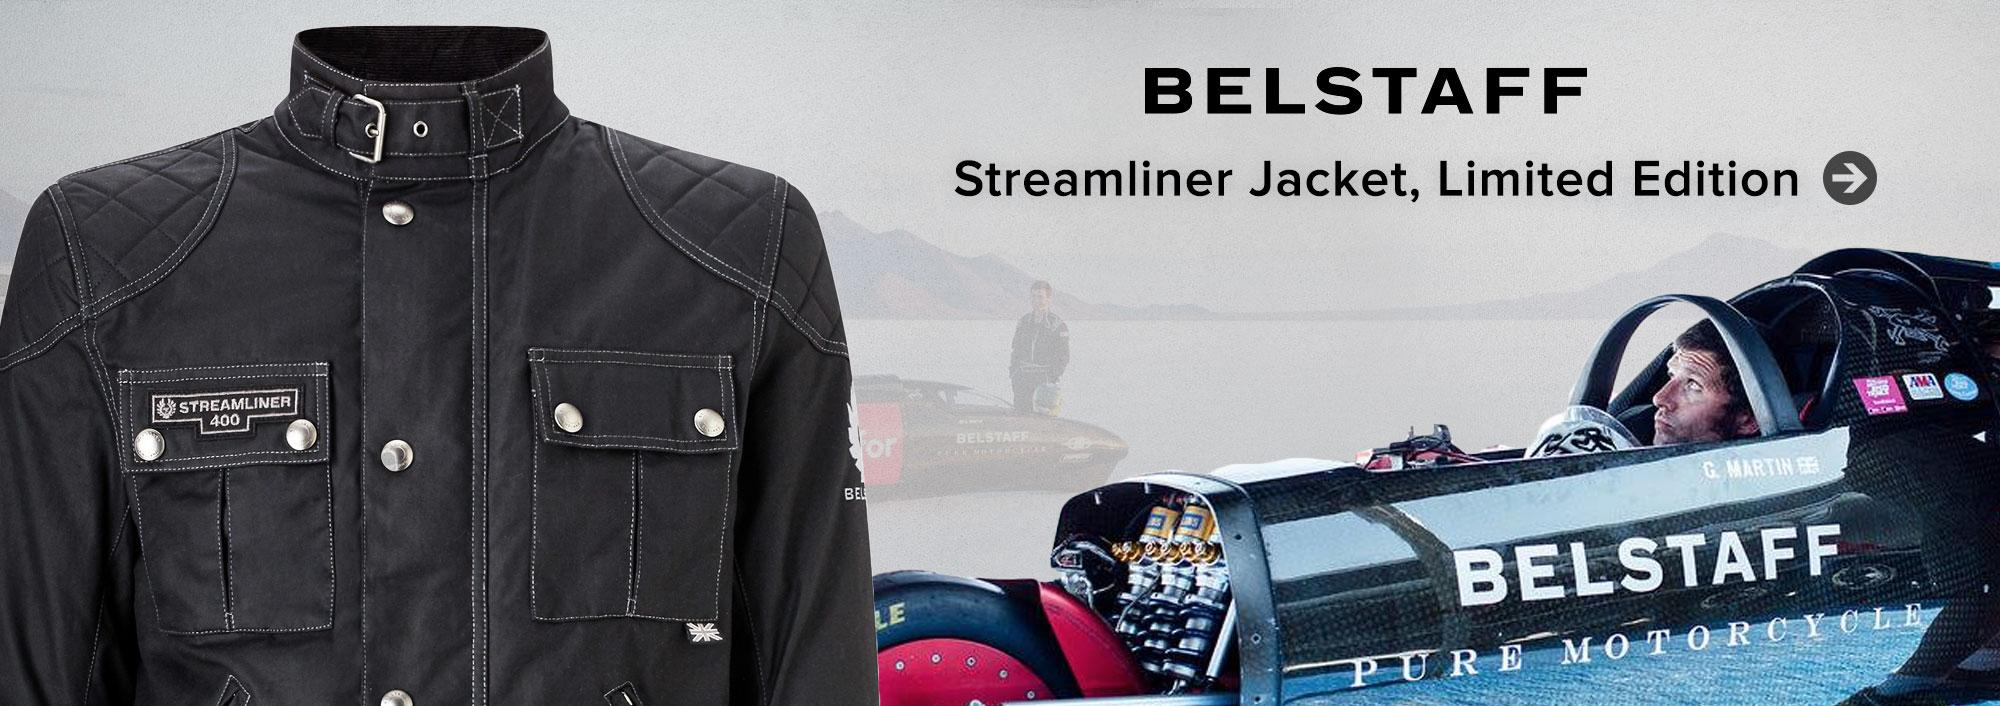 Belstaff Streamliner Jacket: Streamliner jacket produced to celebrate the land speed attempt by Guy Martin